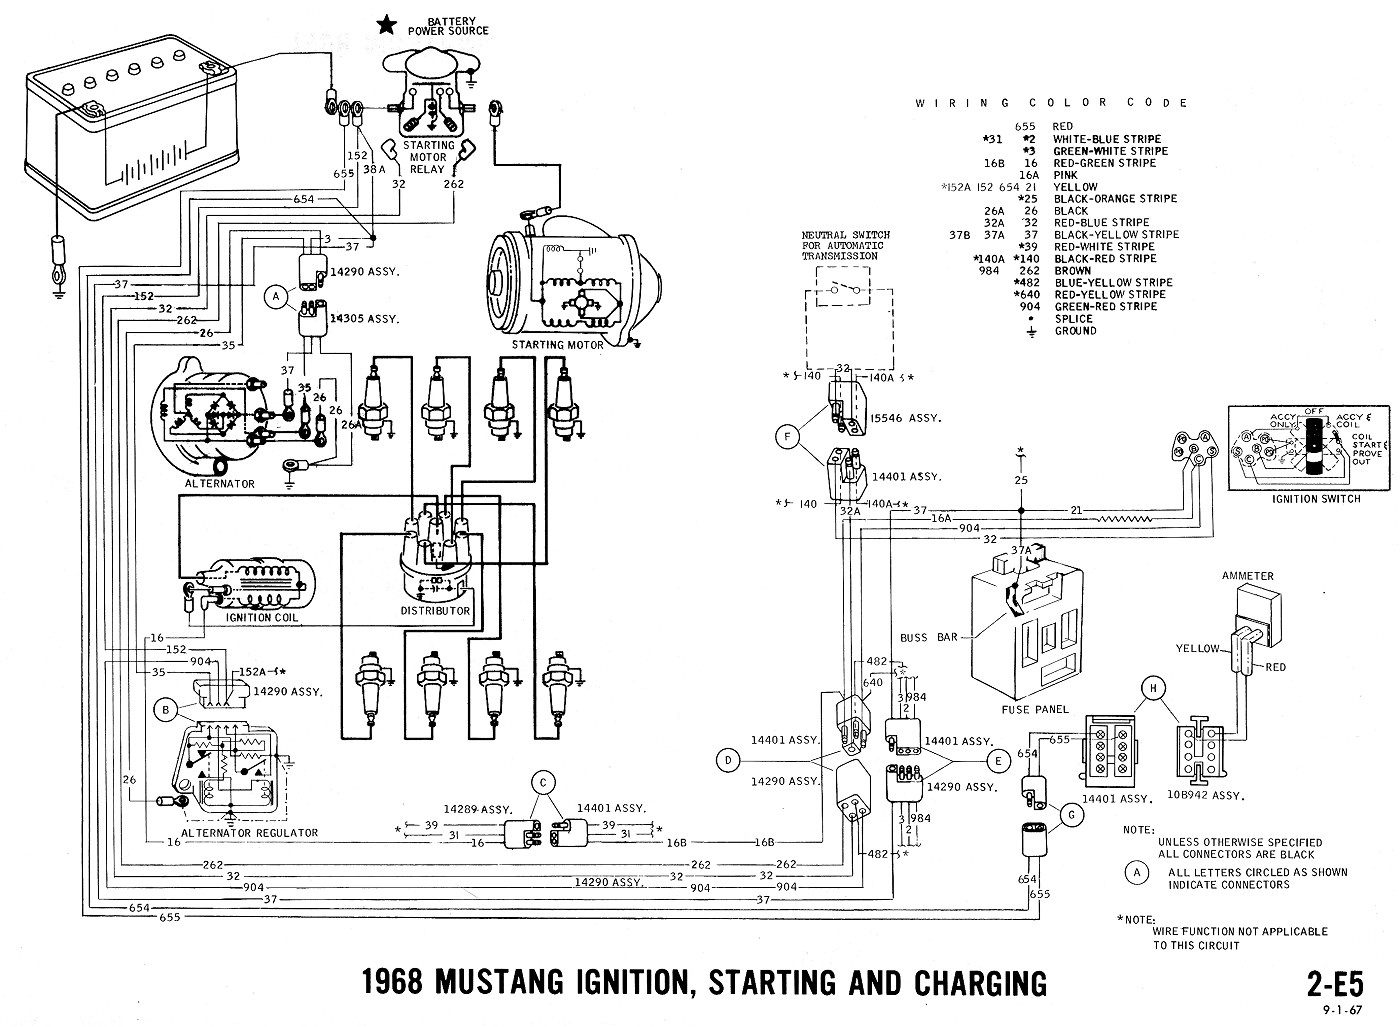 1969 Ford Mustang Wiring Diagram Data 1964 Malibu 72 1980 Turn Signal Switch